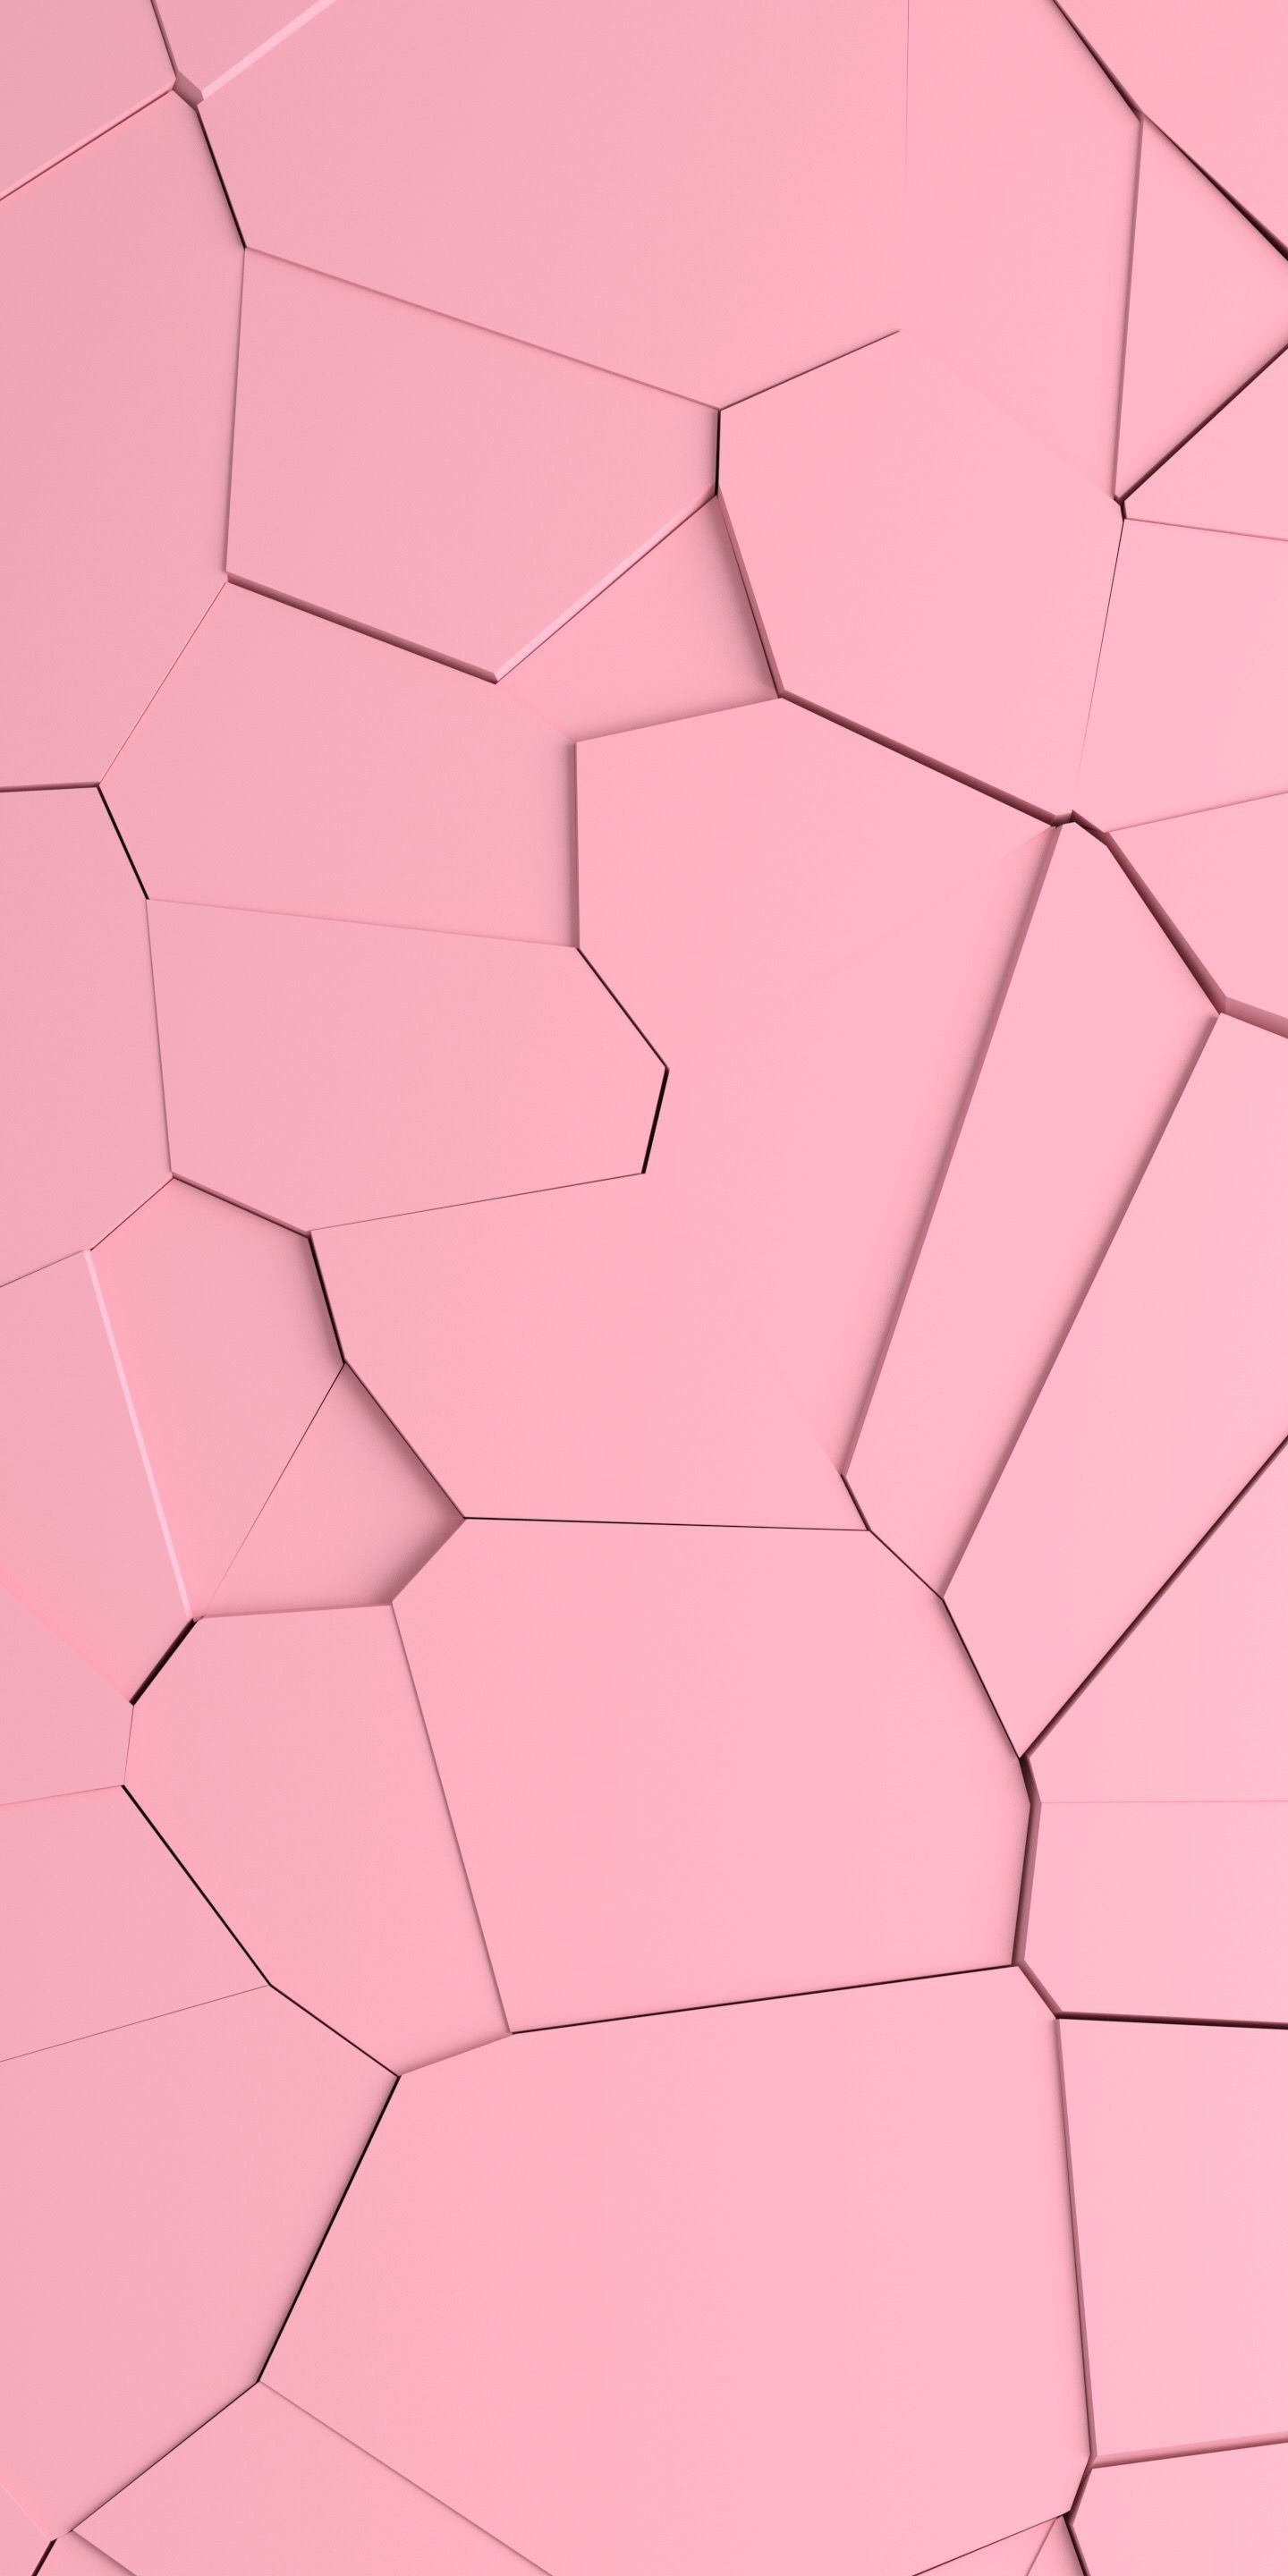 Cute Pink Wallpapers For Iphone 83 Images Pink Wallpaper Iphone Pink Wallpaper Abstract Iphone Wallpaper